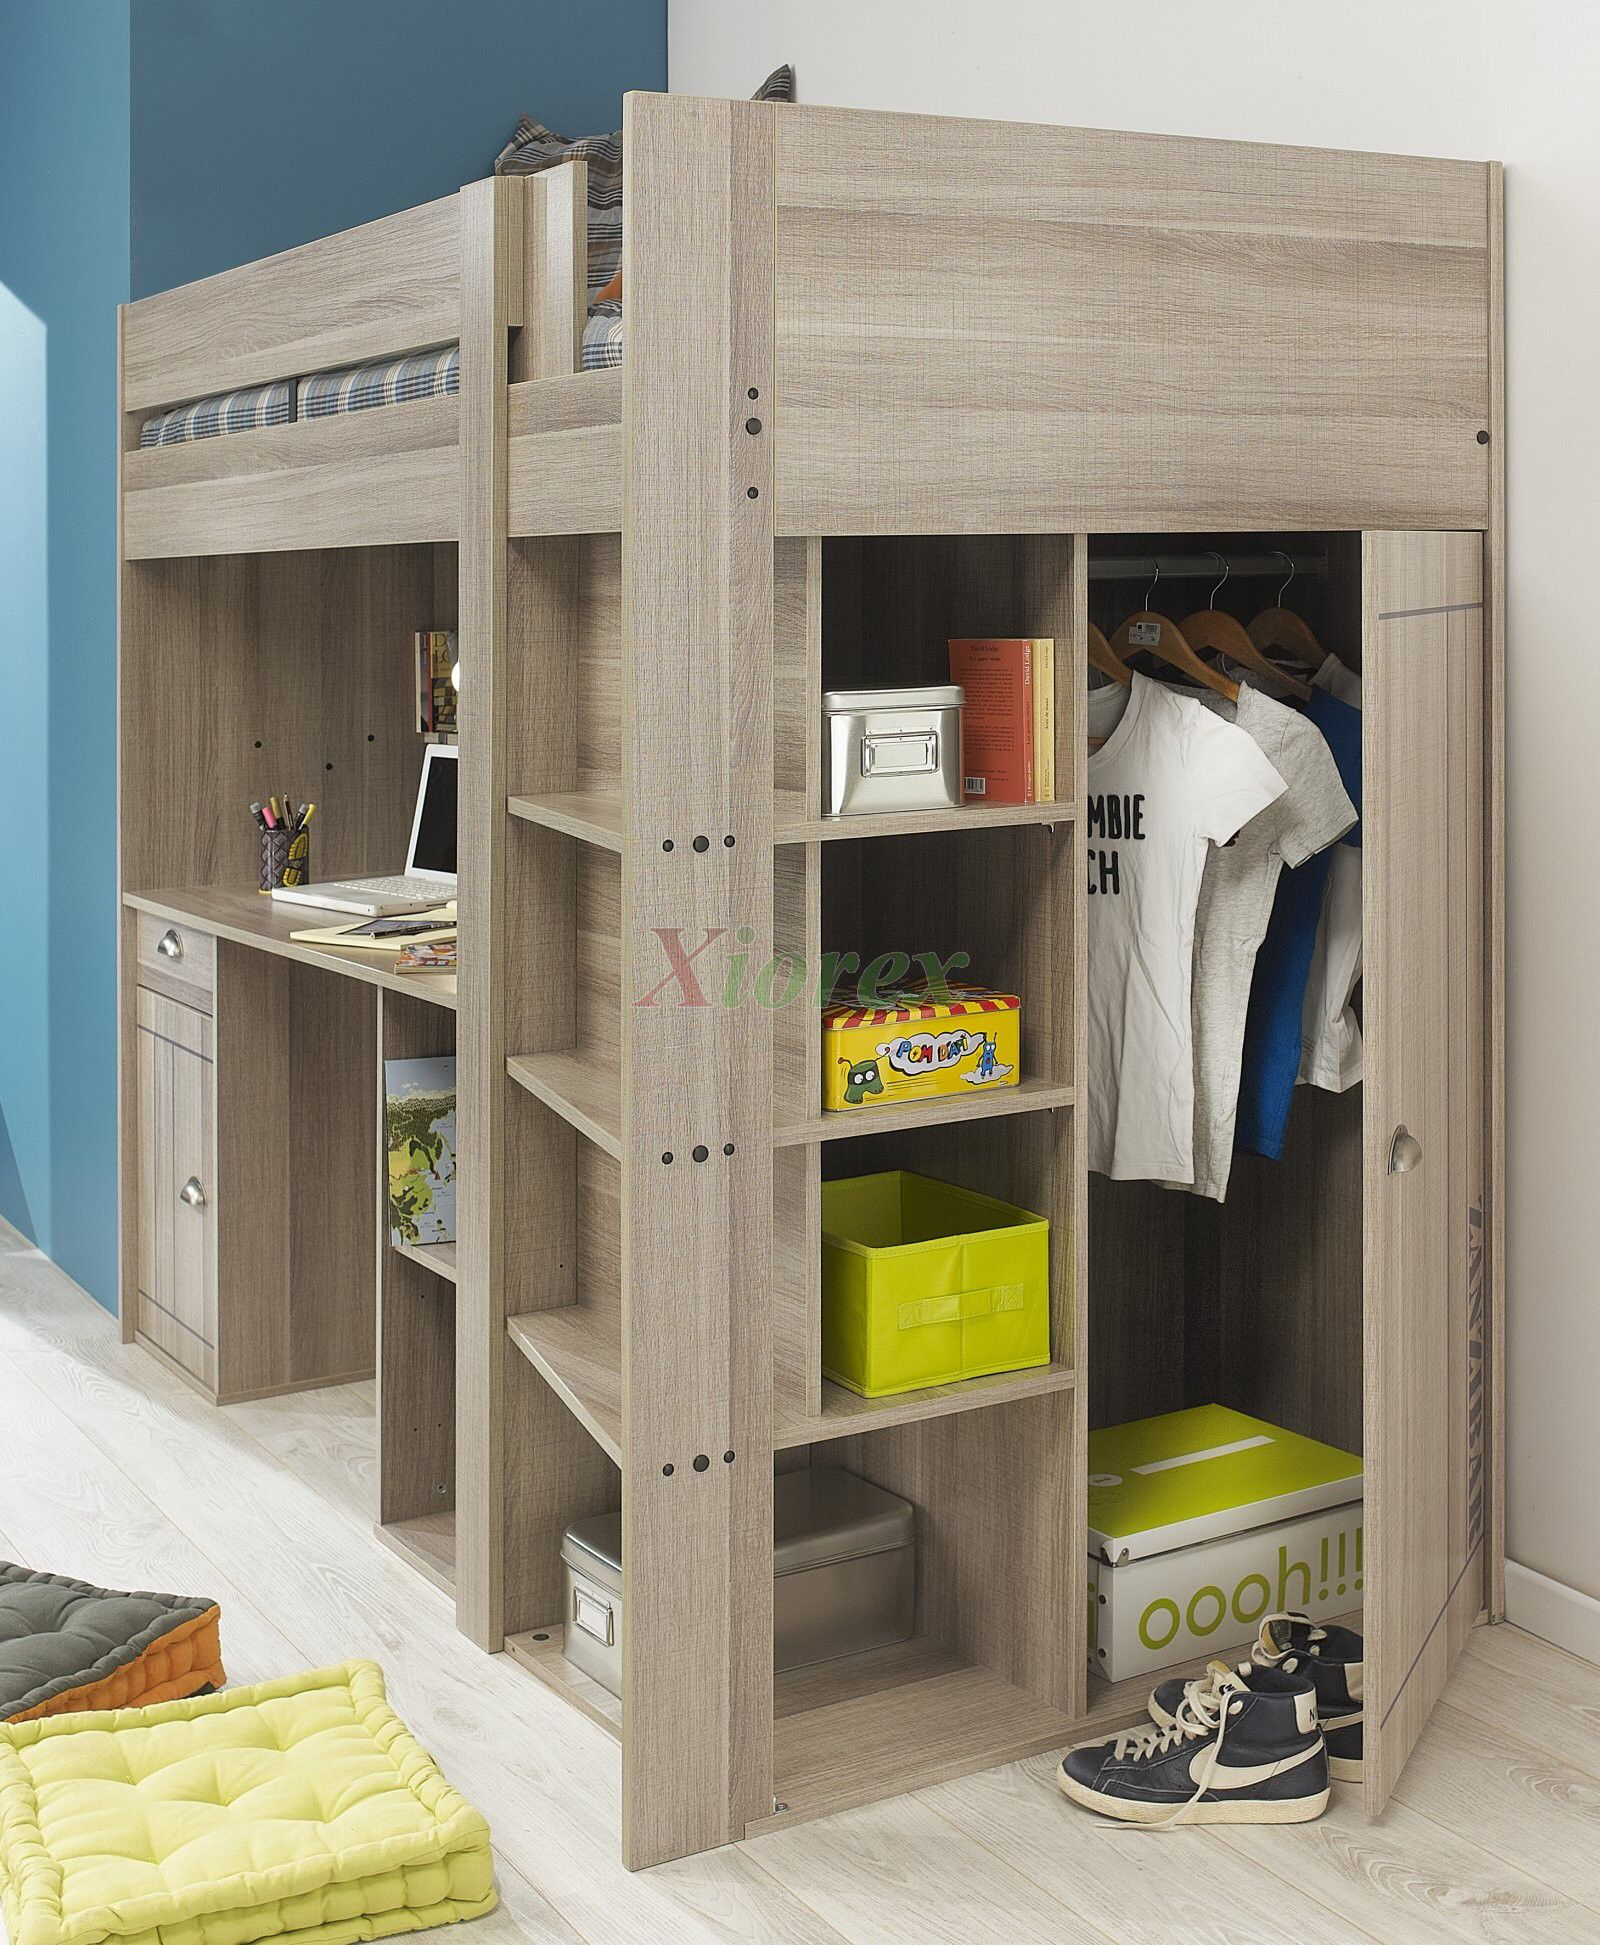 Loft bed Loft bed For the